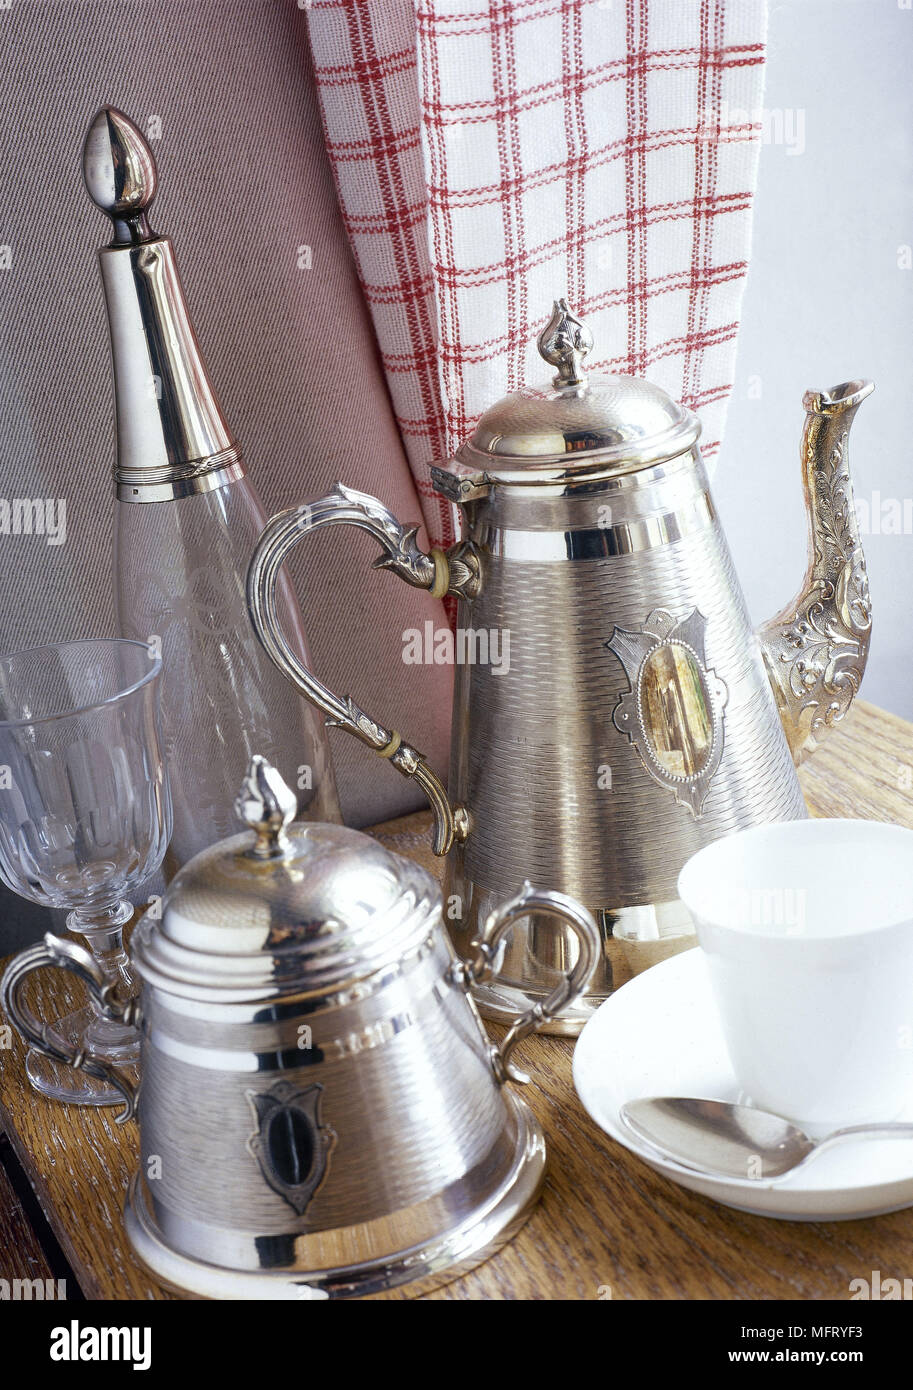 Antique Silver Coffee Pot Sugar Dish Crystal Glass And Decanter Interiors Detail Silverware